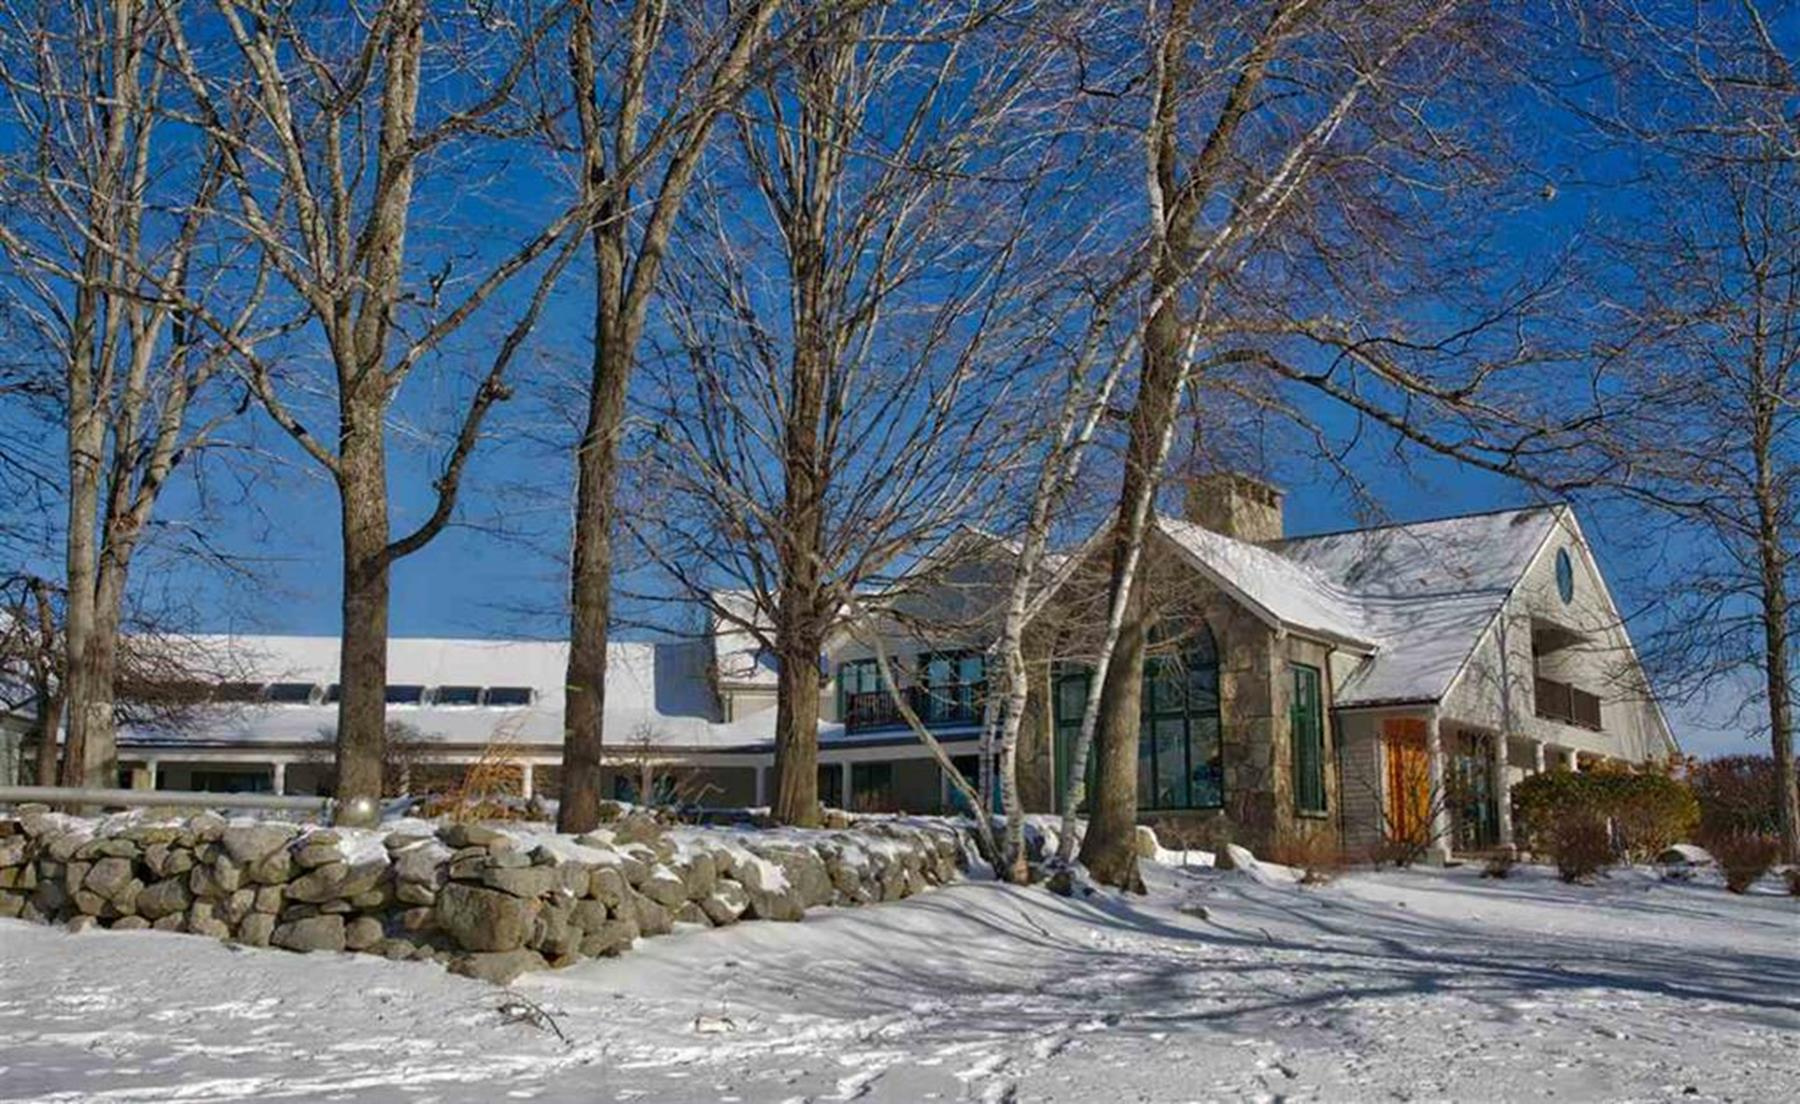 Single Family Home for Sale at 84 Canaan Back, Barrington Barrington, New Hampshire 03825 United States